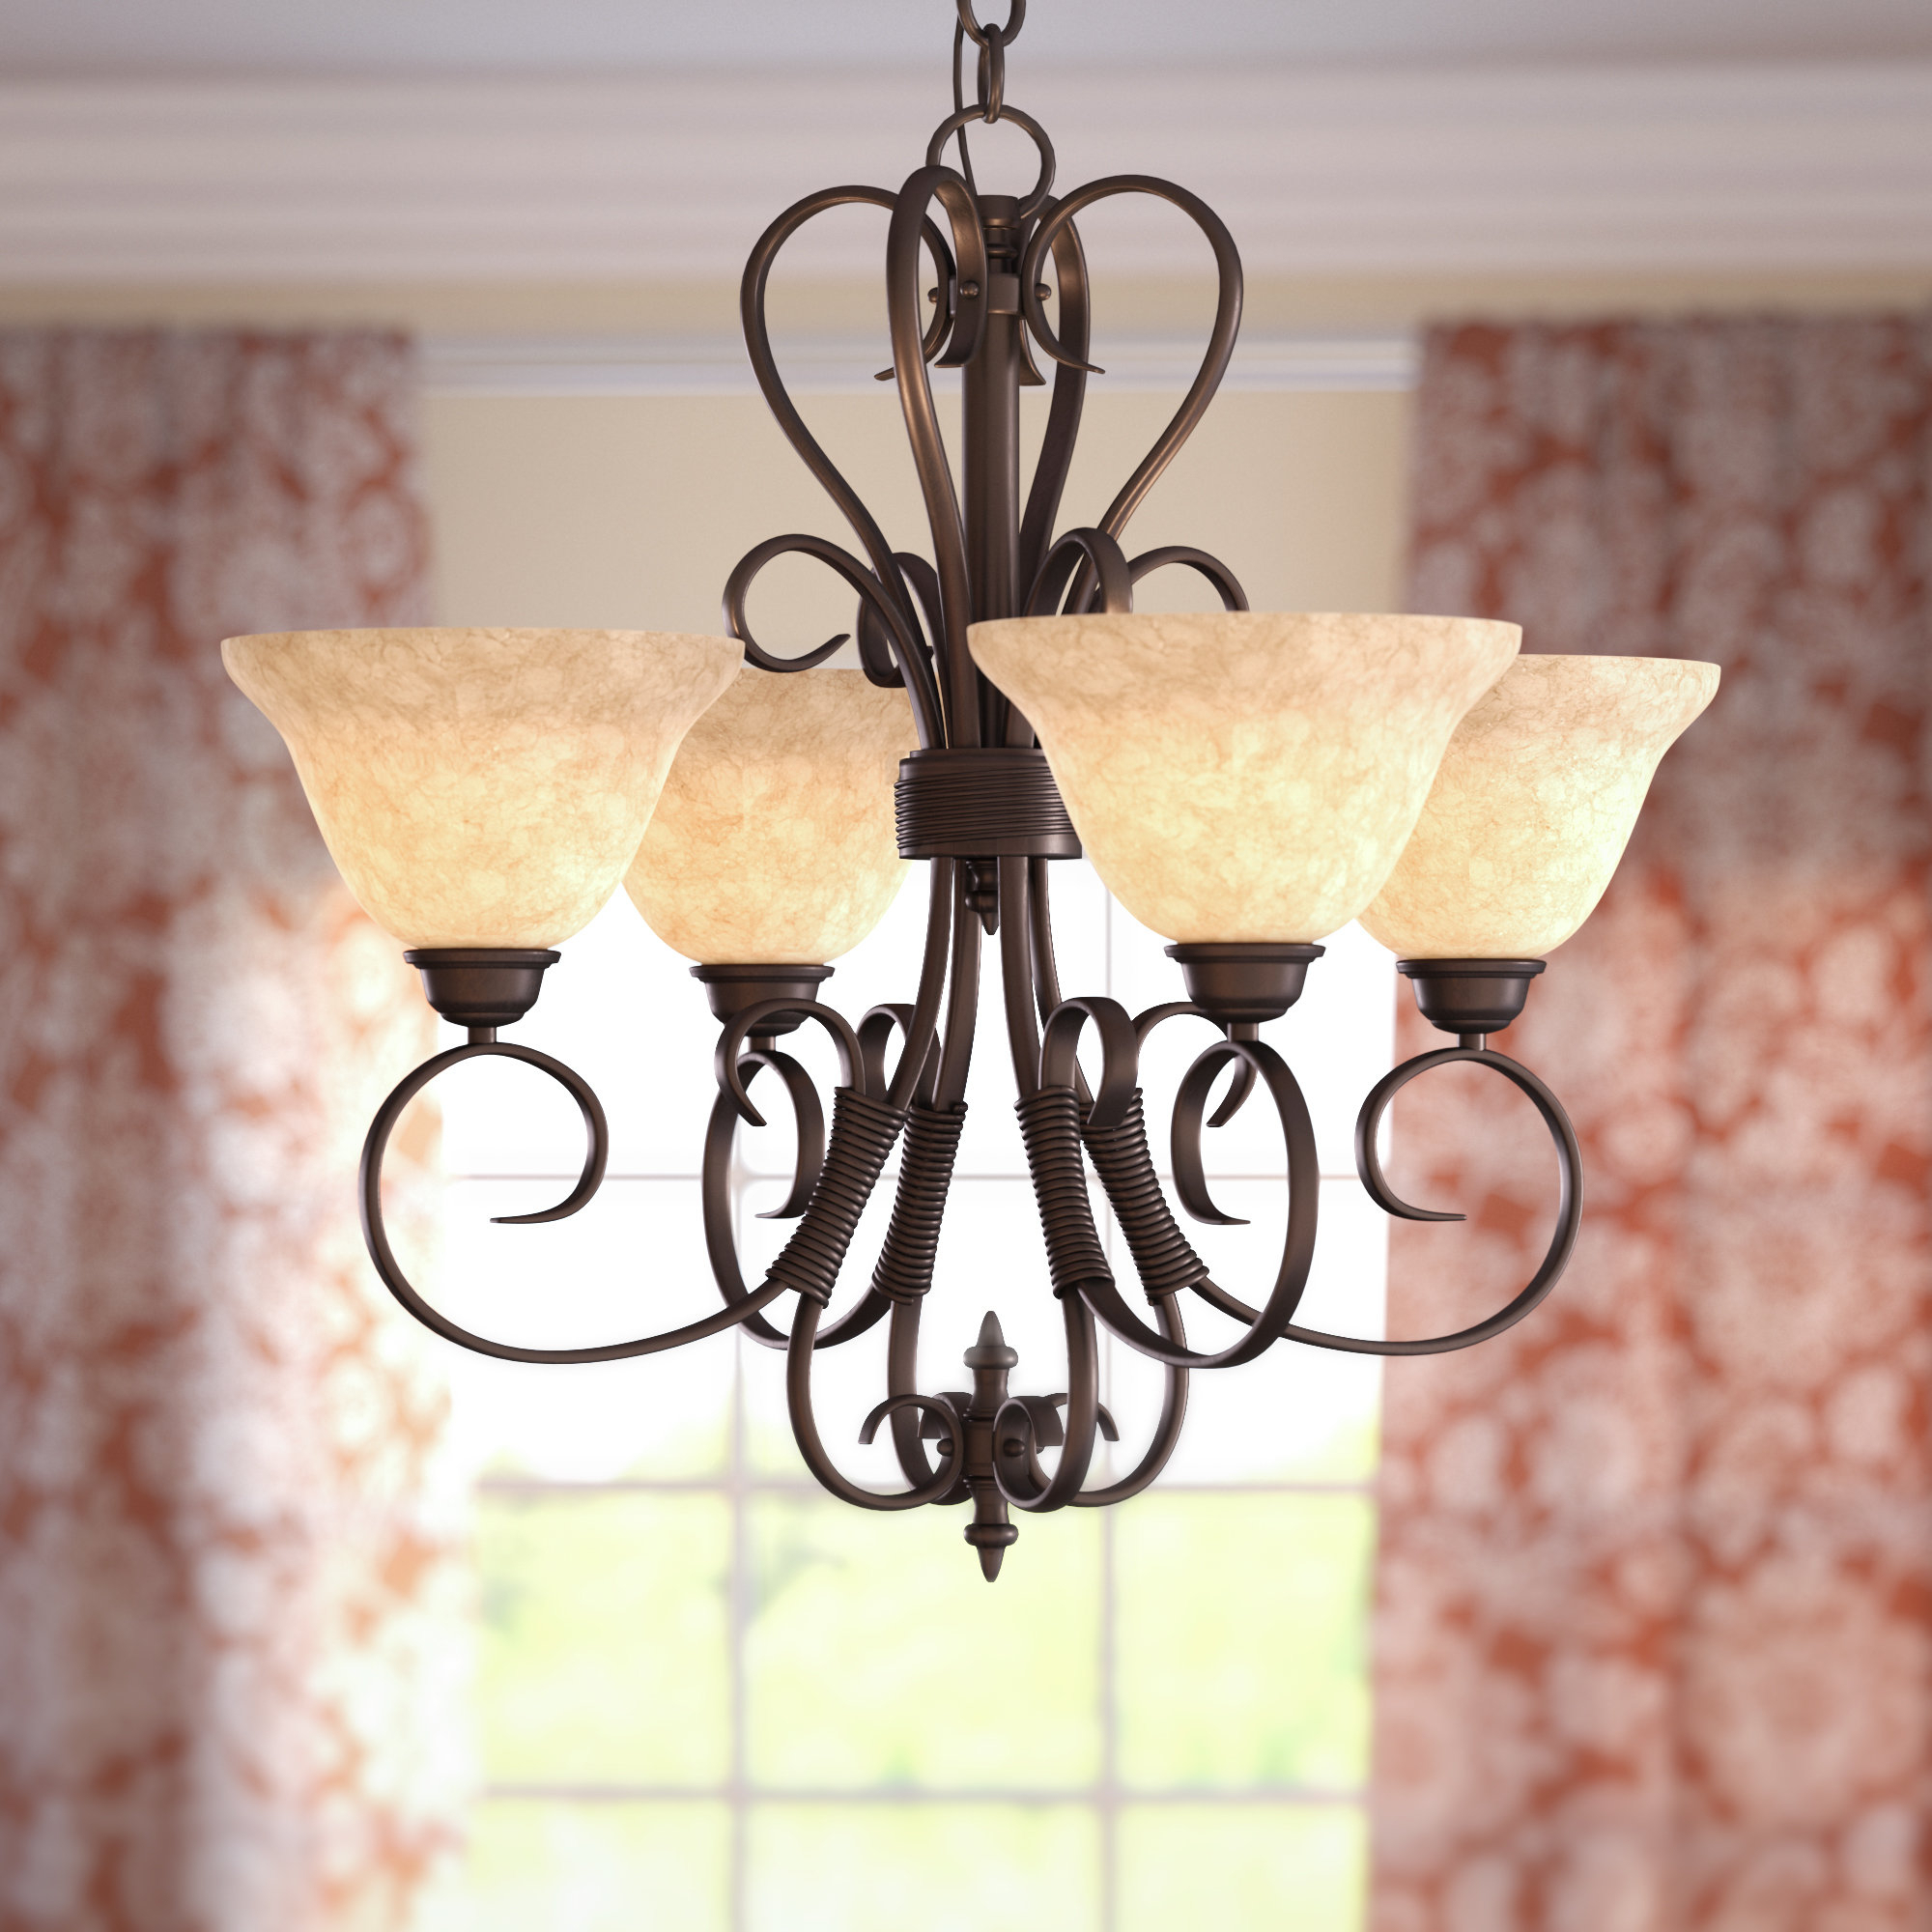 Gaines 4 Light Shaded Chandelier Pertaining To Gaines 5 Light Shaded Chandeliers (View 8 of 30)